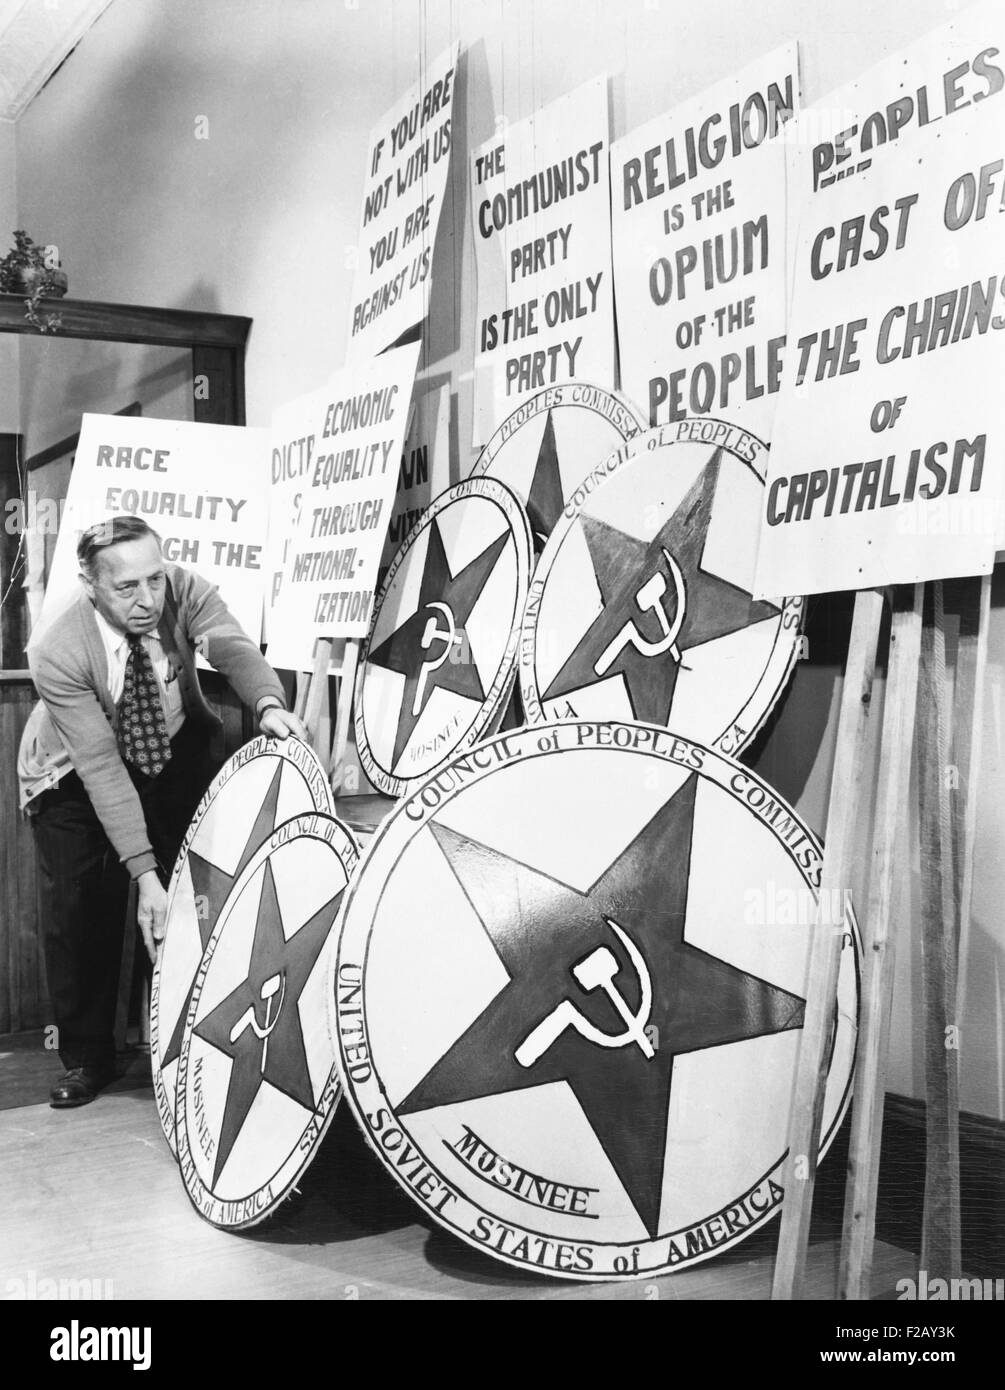 The Mosinee, Wisconsin, American Legion staged a mock Communist takeover. April 29, 1950. A participant organizes - Stock Image